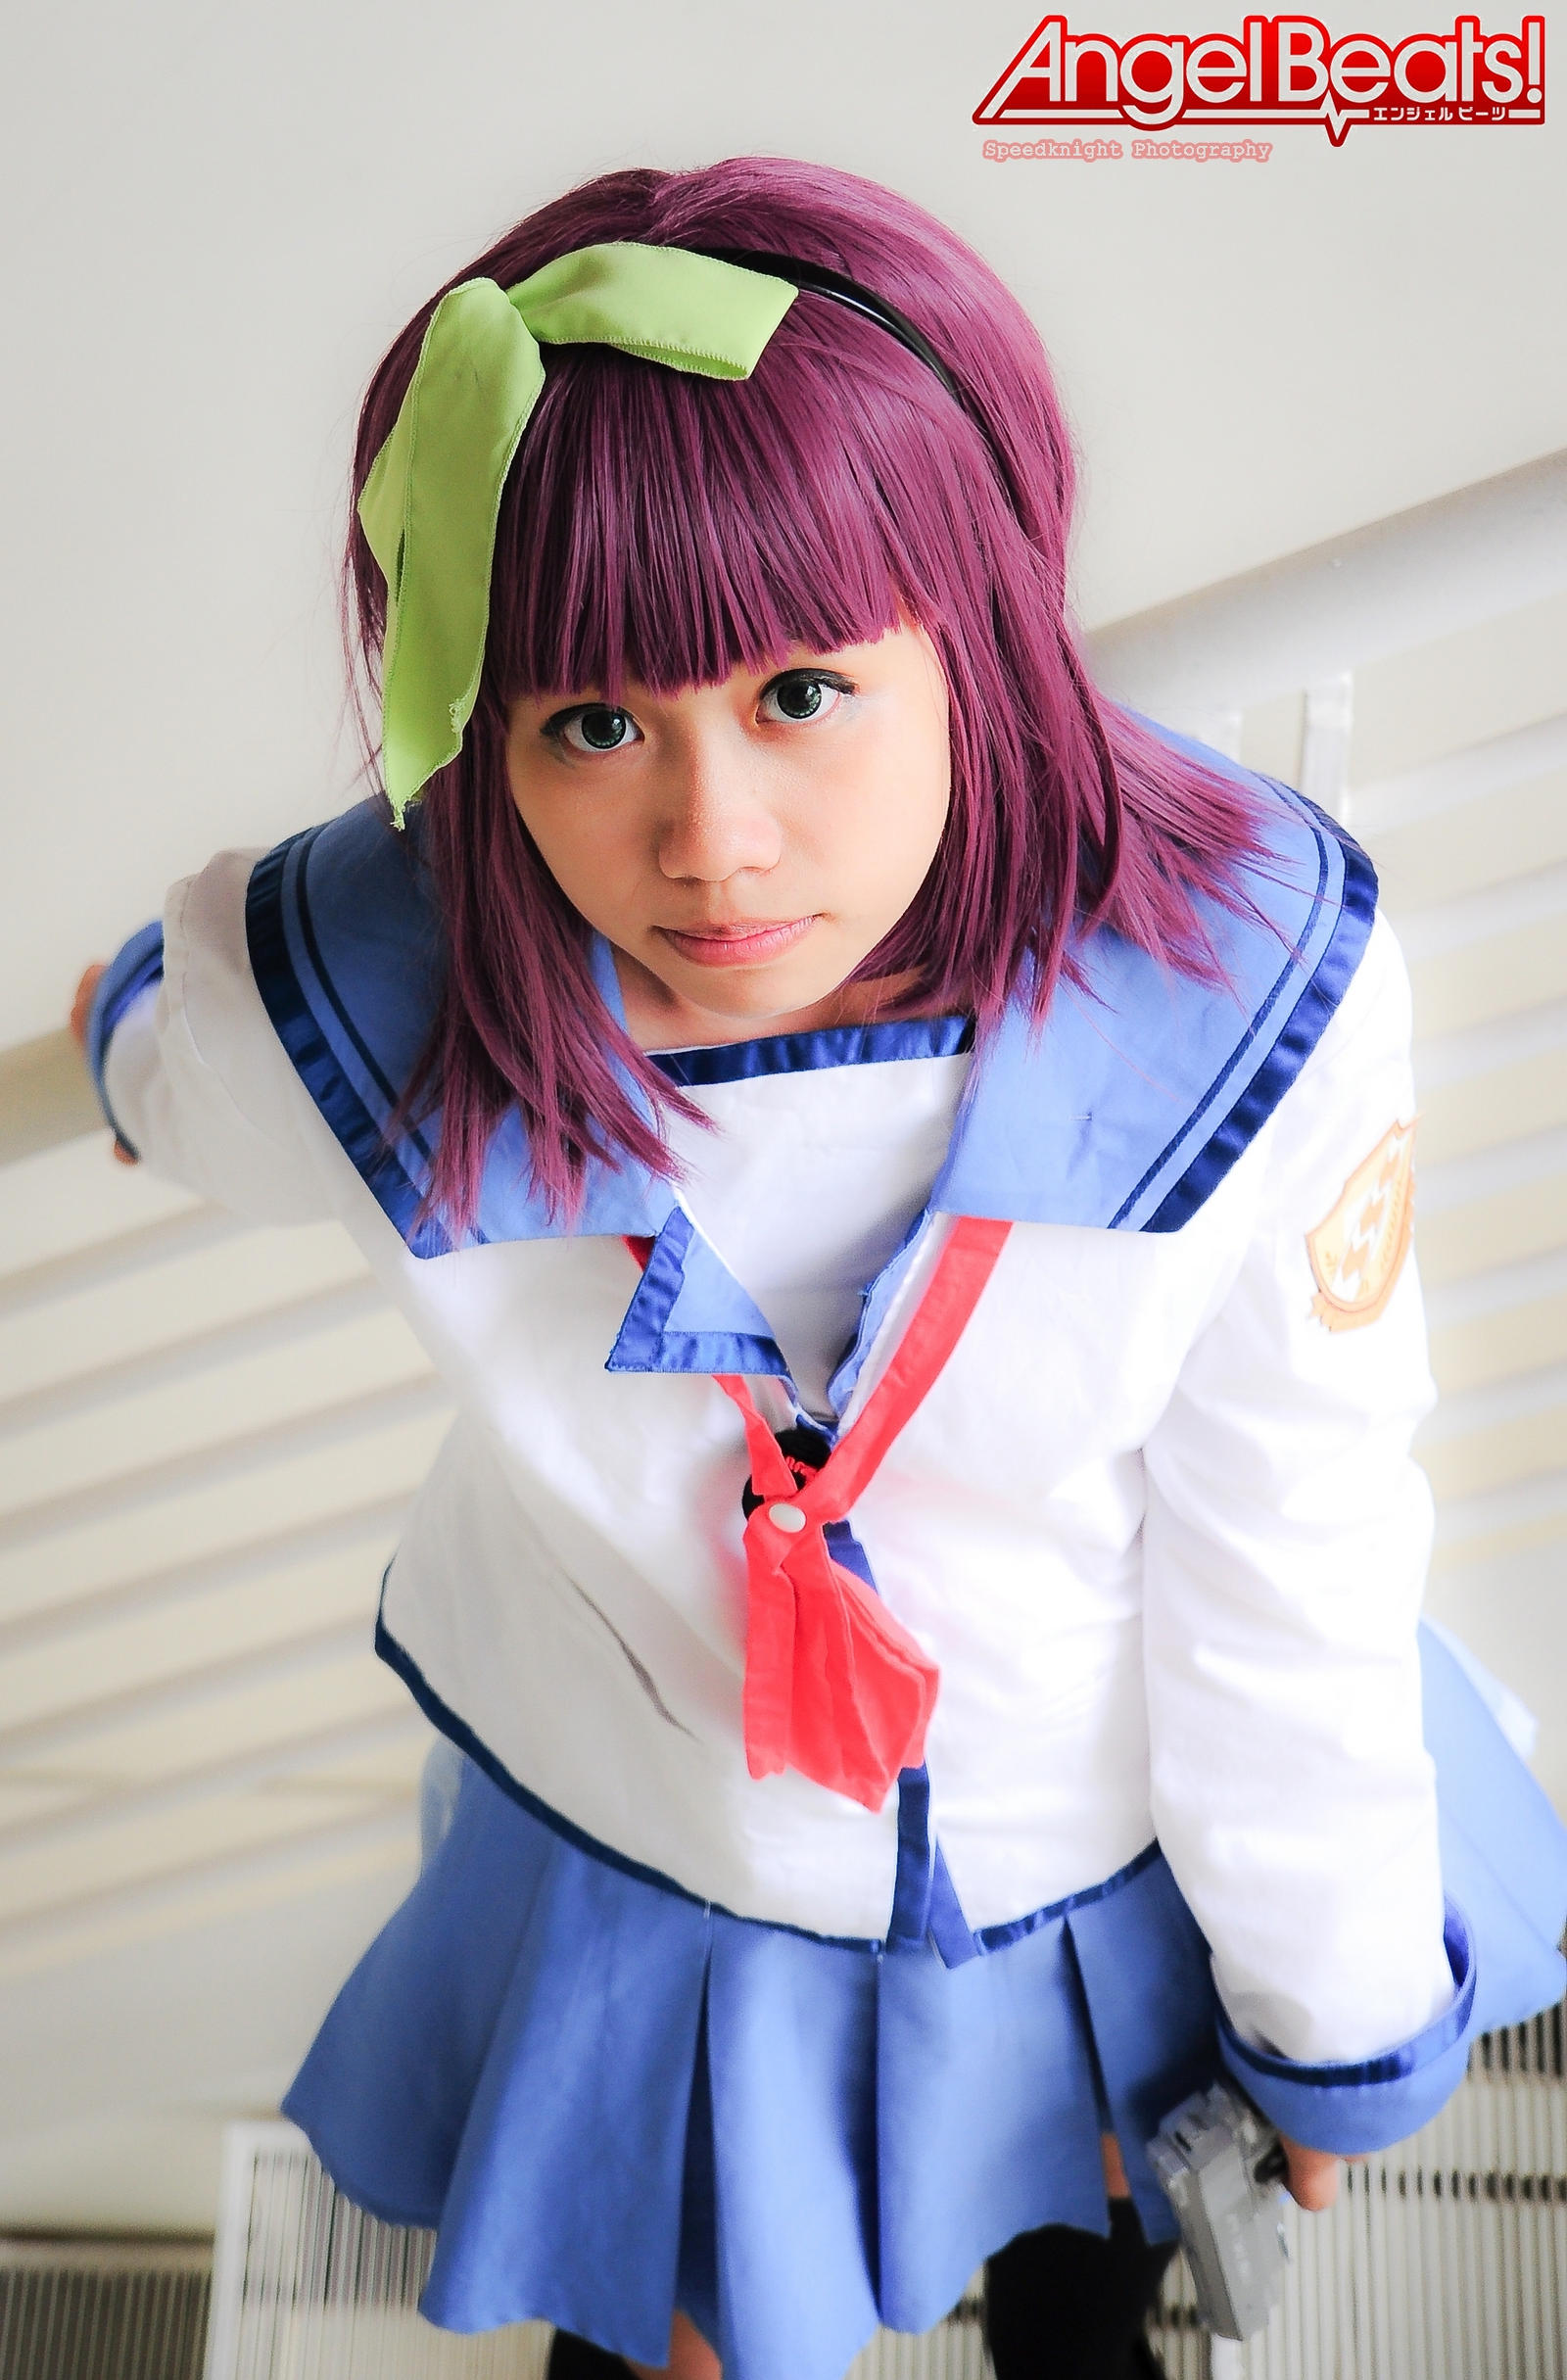 angel beats shoot yuripee by speedknight on angel beats shoot yuripee by speedknight